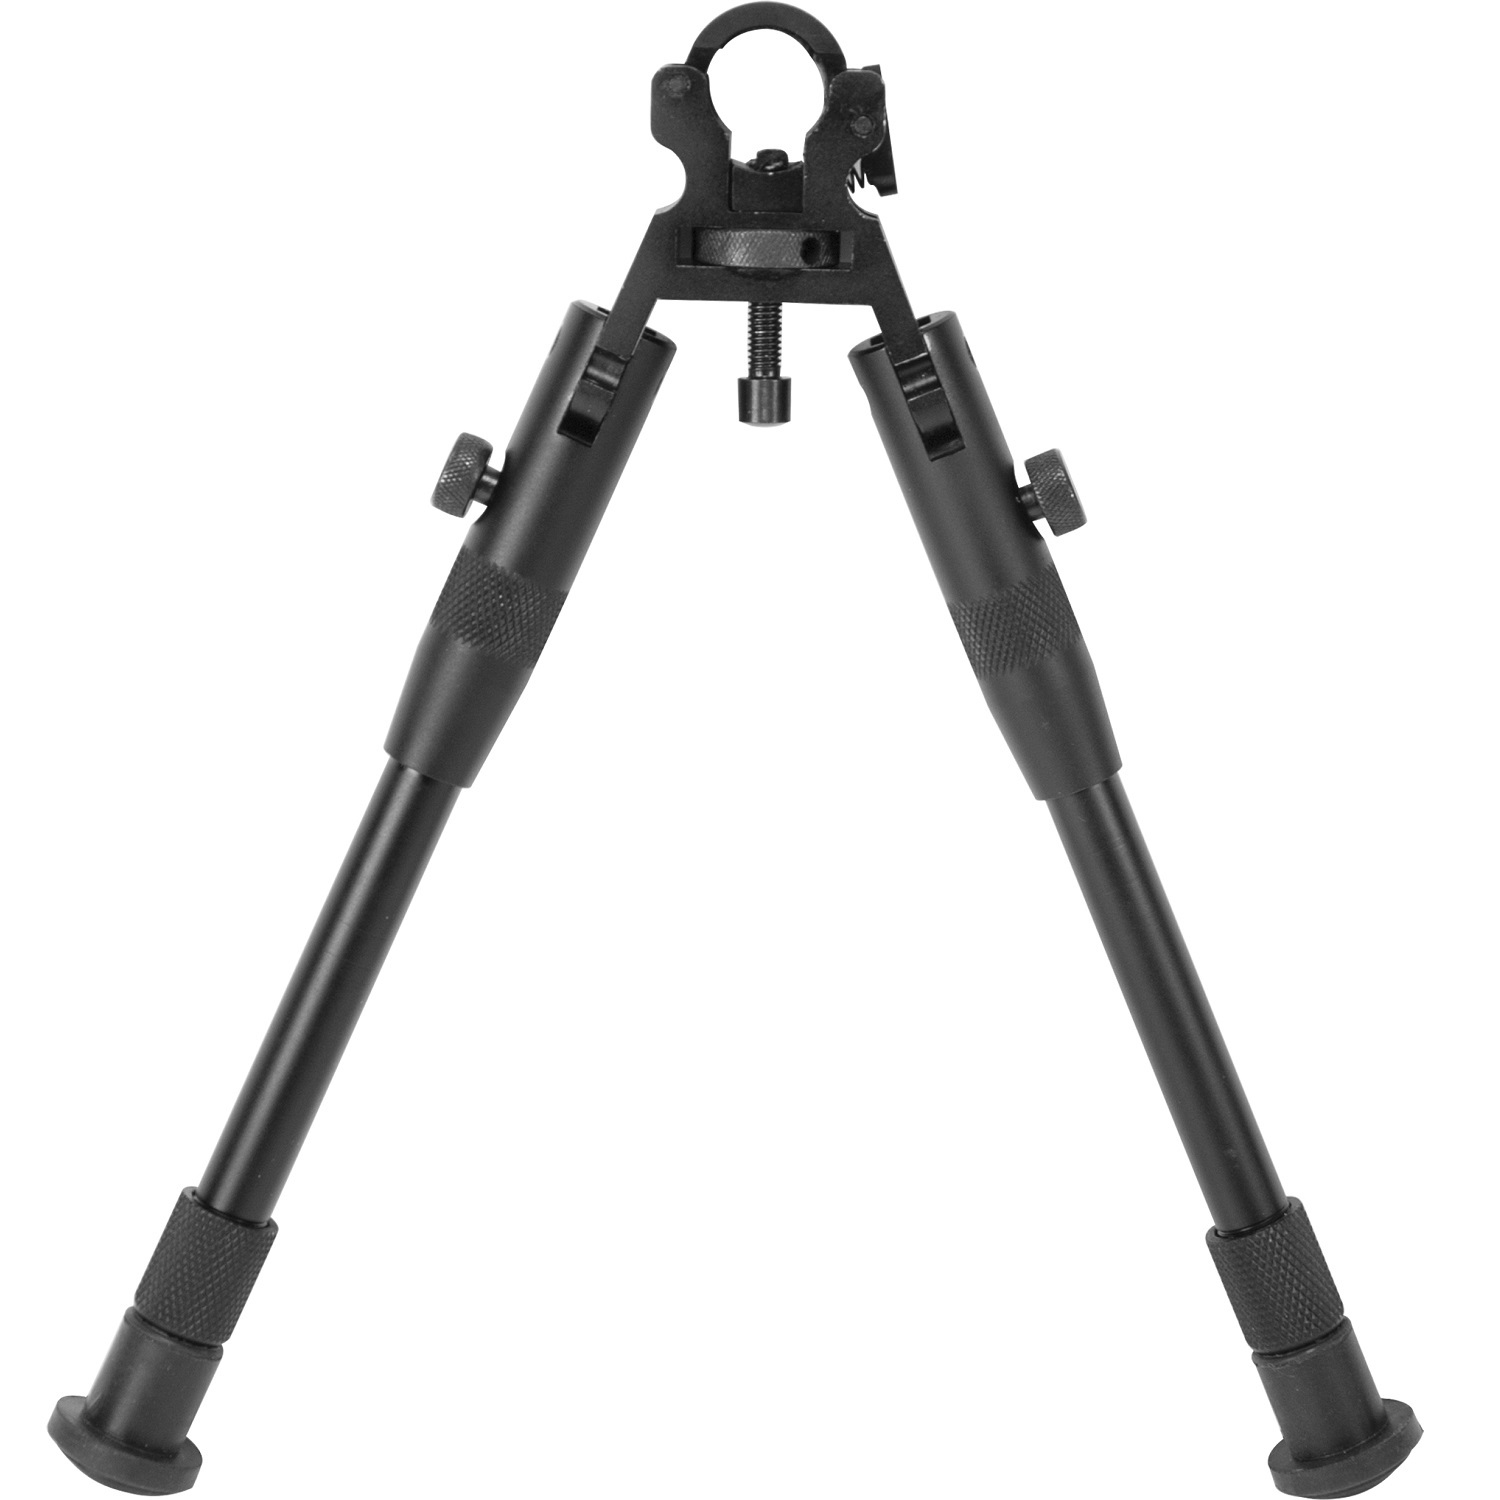 Barska Barrel Clamp High Height Bipod with Adjustable Legs